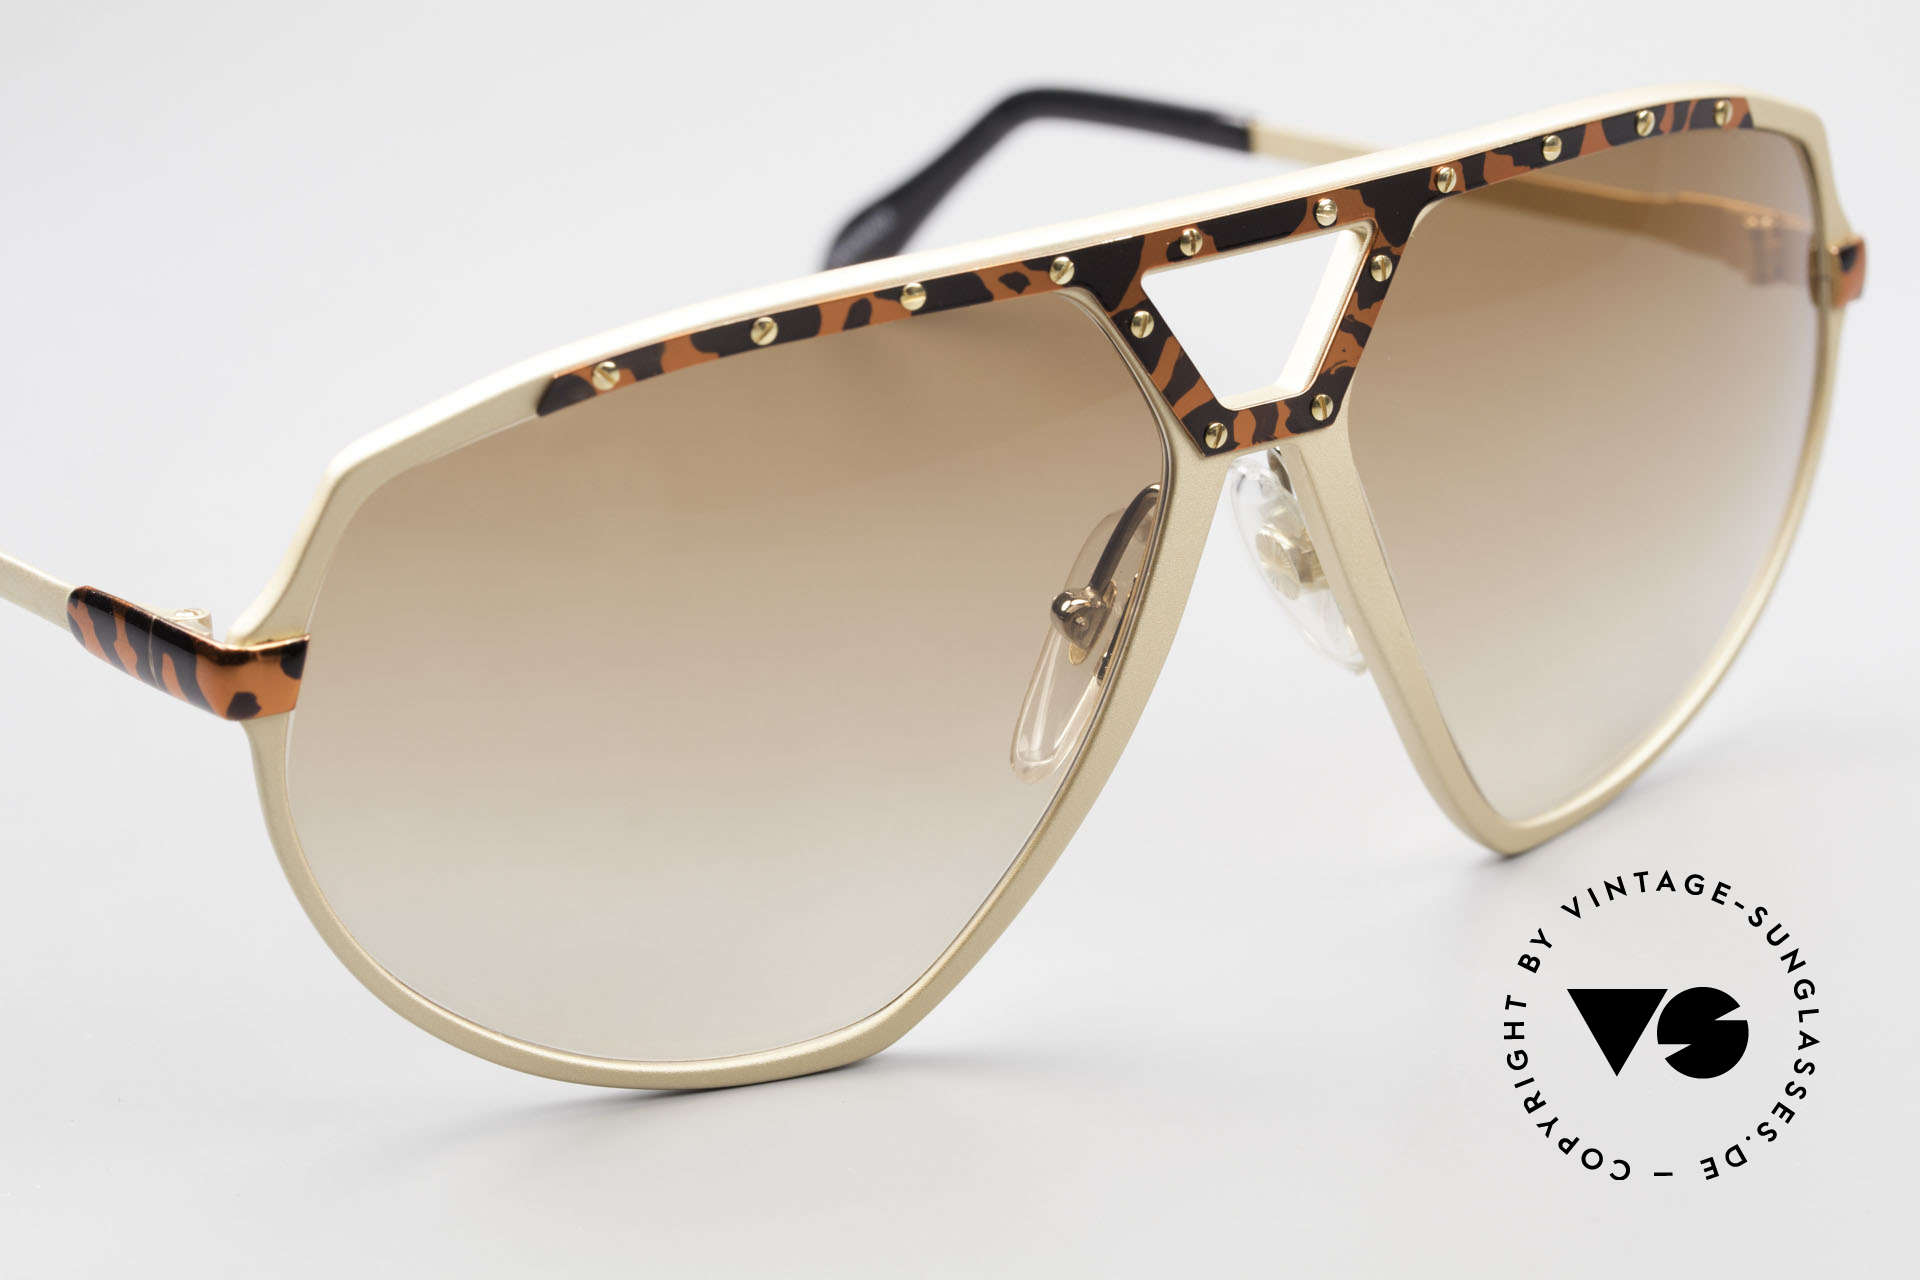 Alpina M1/8 80's West Germany Sunglasses, NO retro specs, but a 30 years old design ORIGINAL, Made for Men